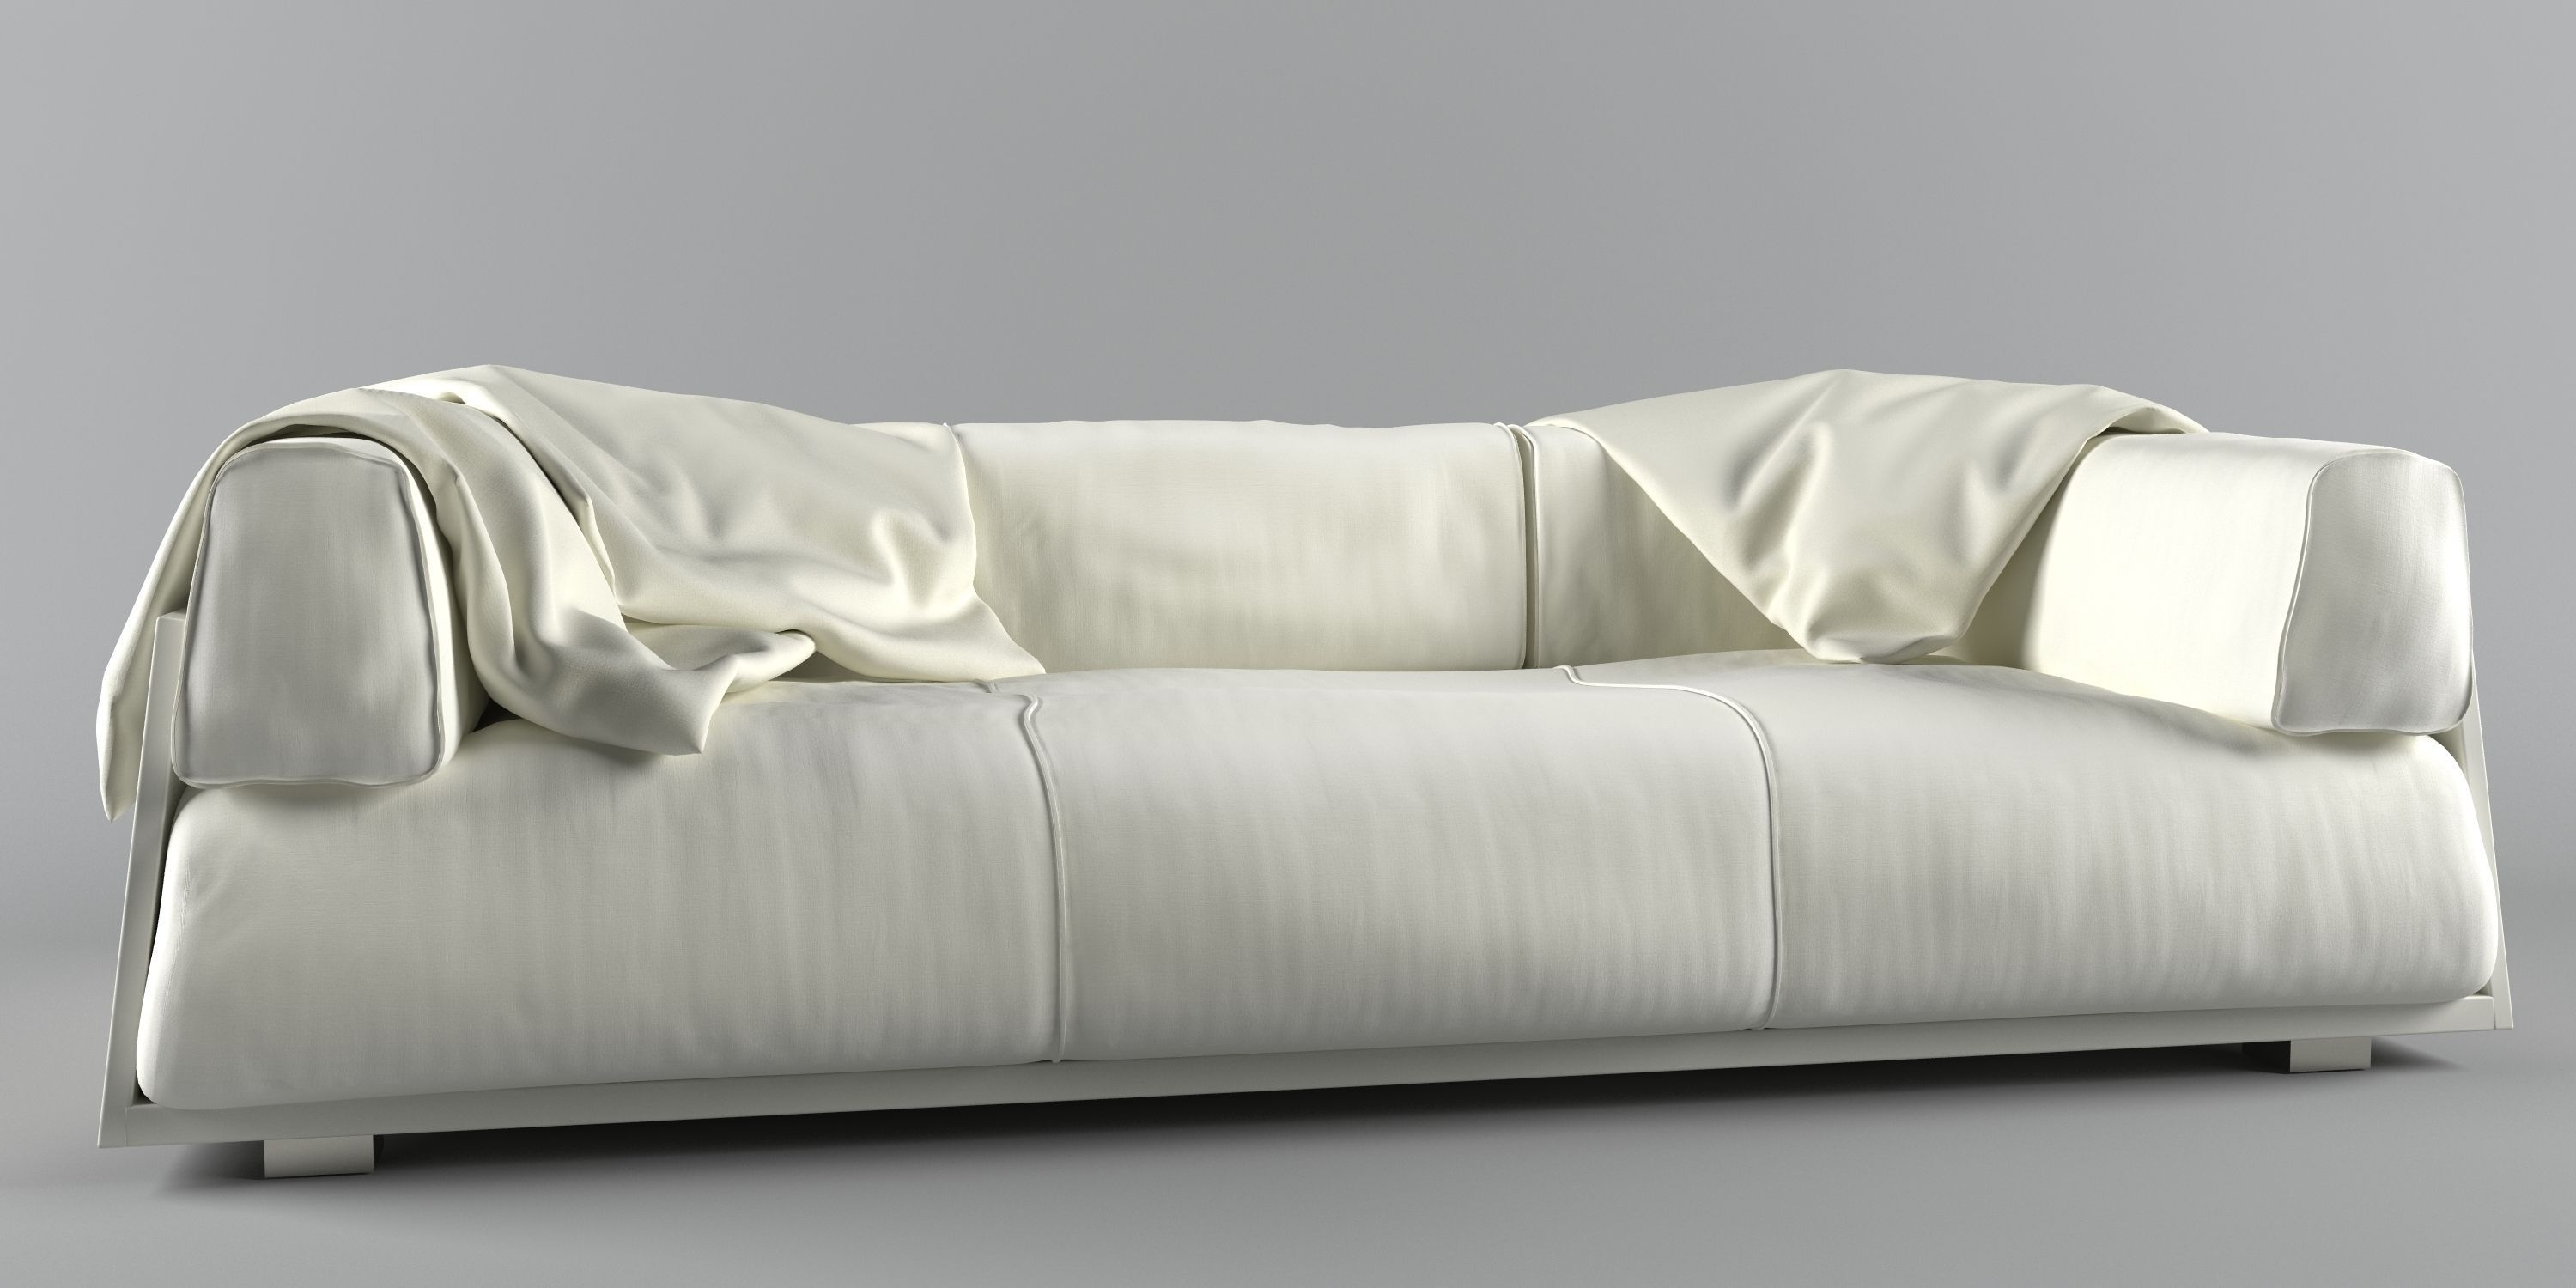 Widely Used Beautiful Soft Sofa 24 For Sofas And Couches Ideas With Soft Sofa In Soft Sofas (View 13 of 15)